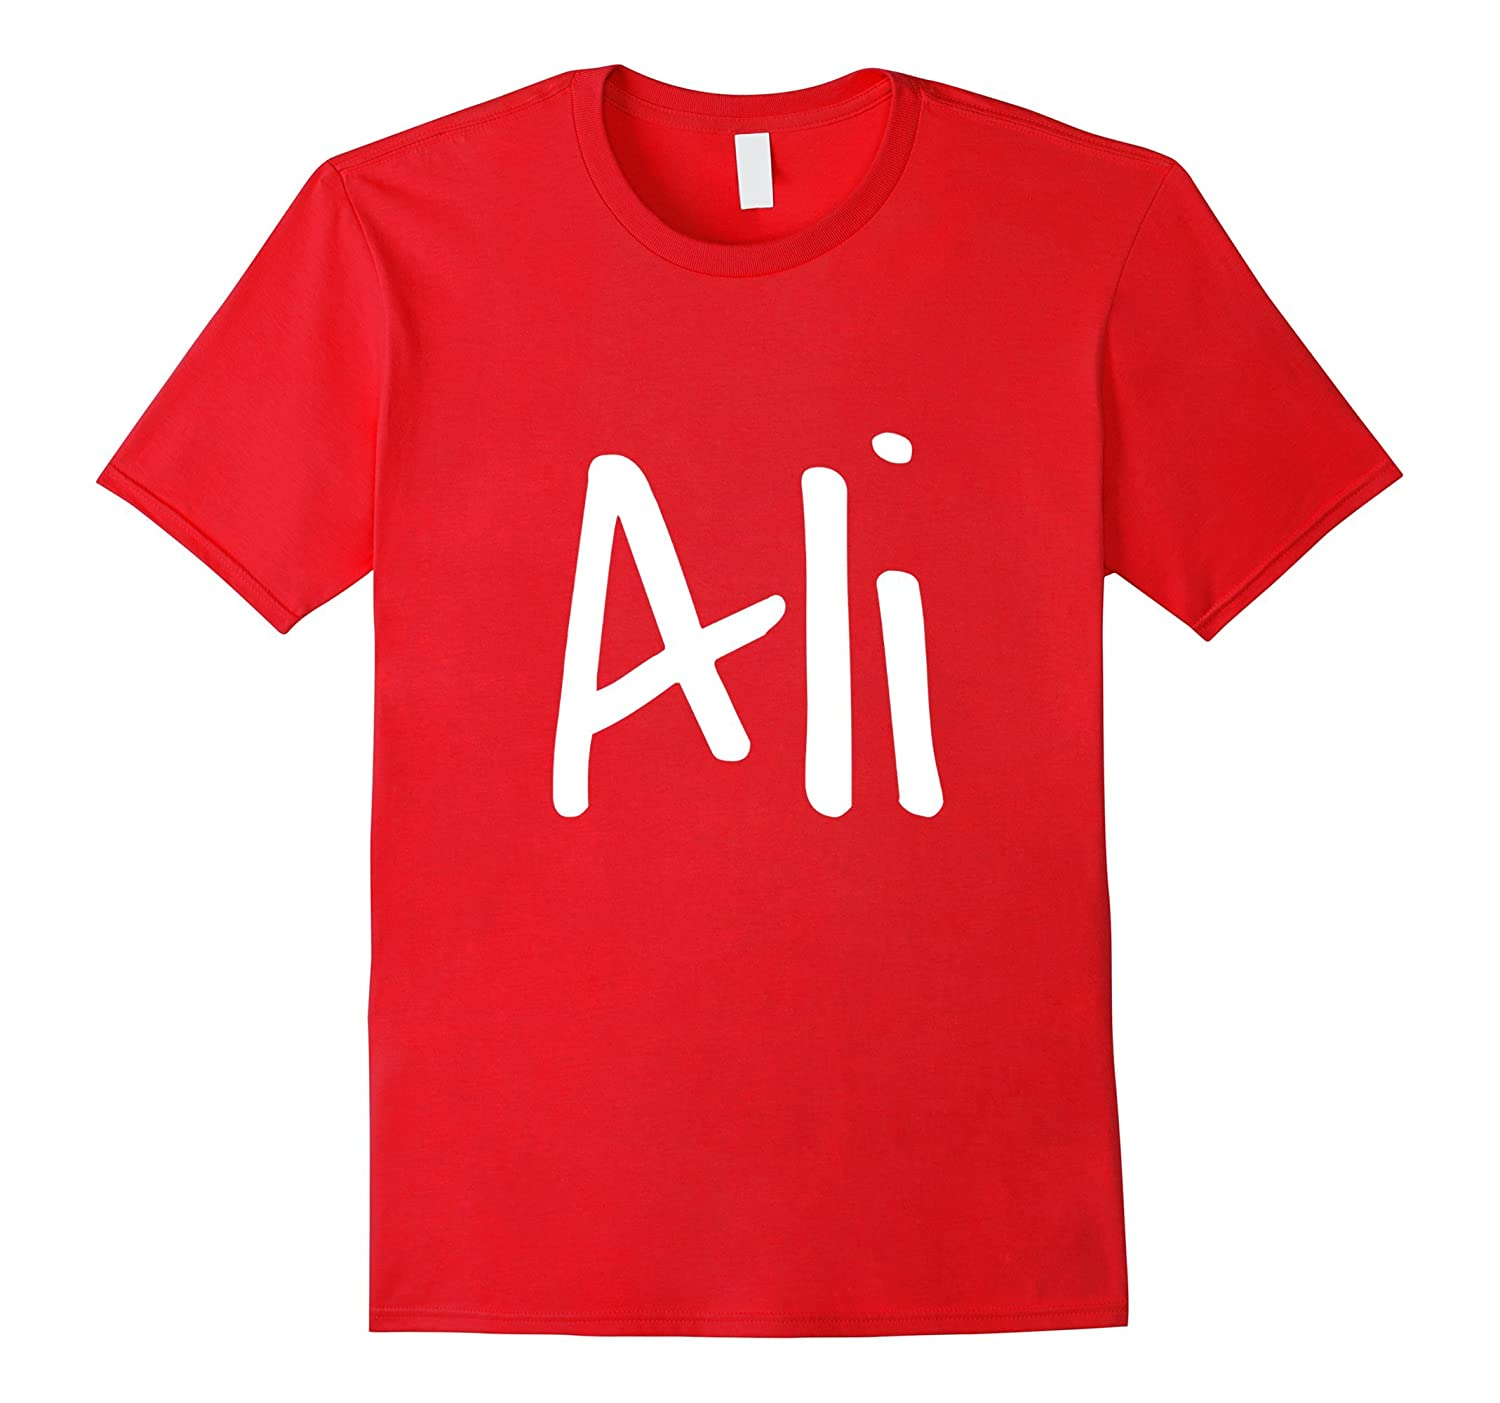 Ali - Your t-shirt with your name on it!-TH